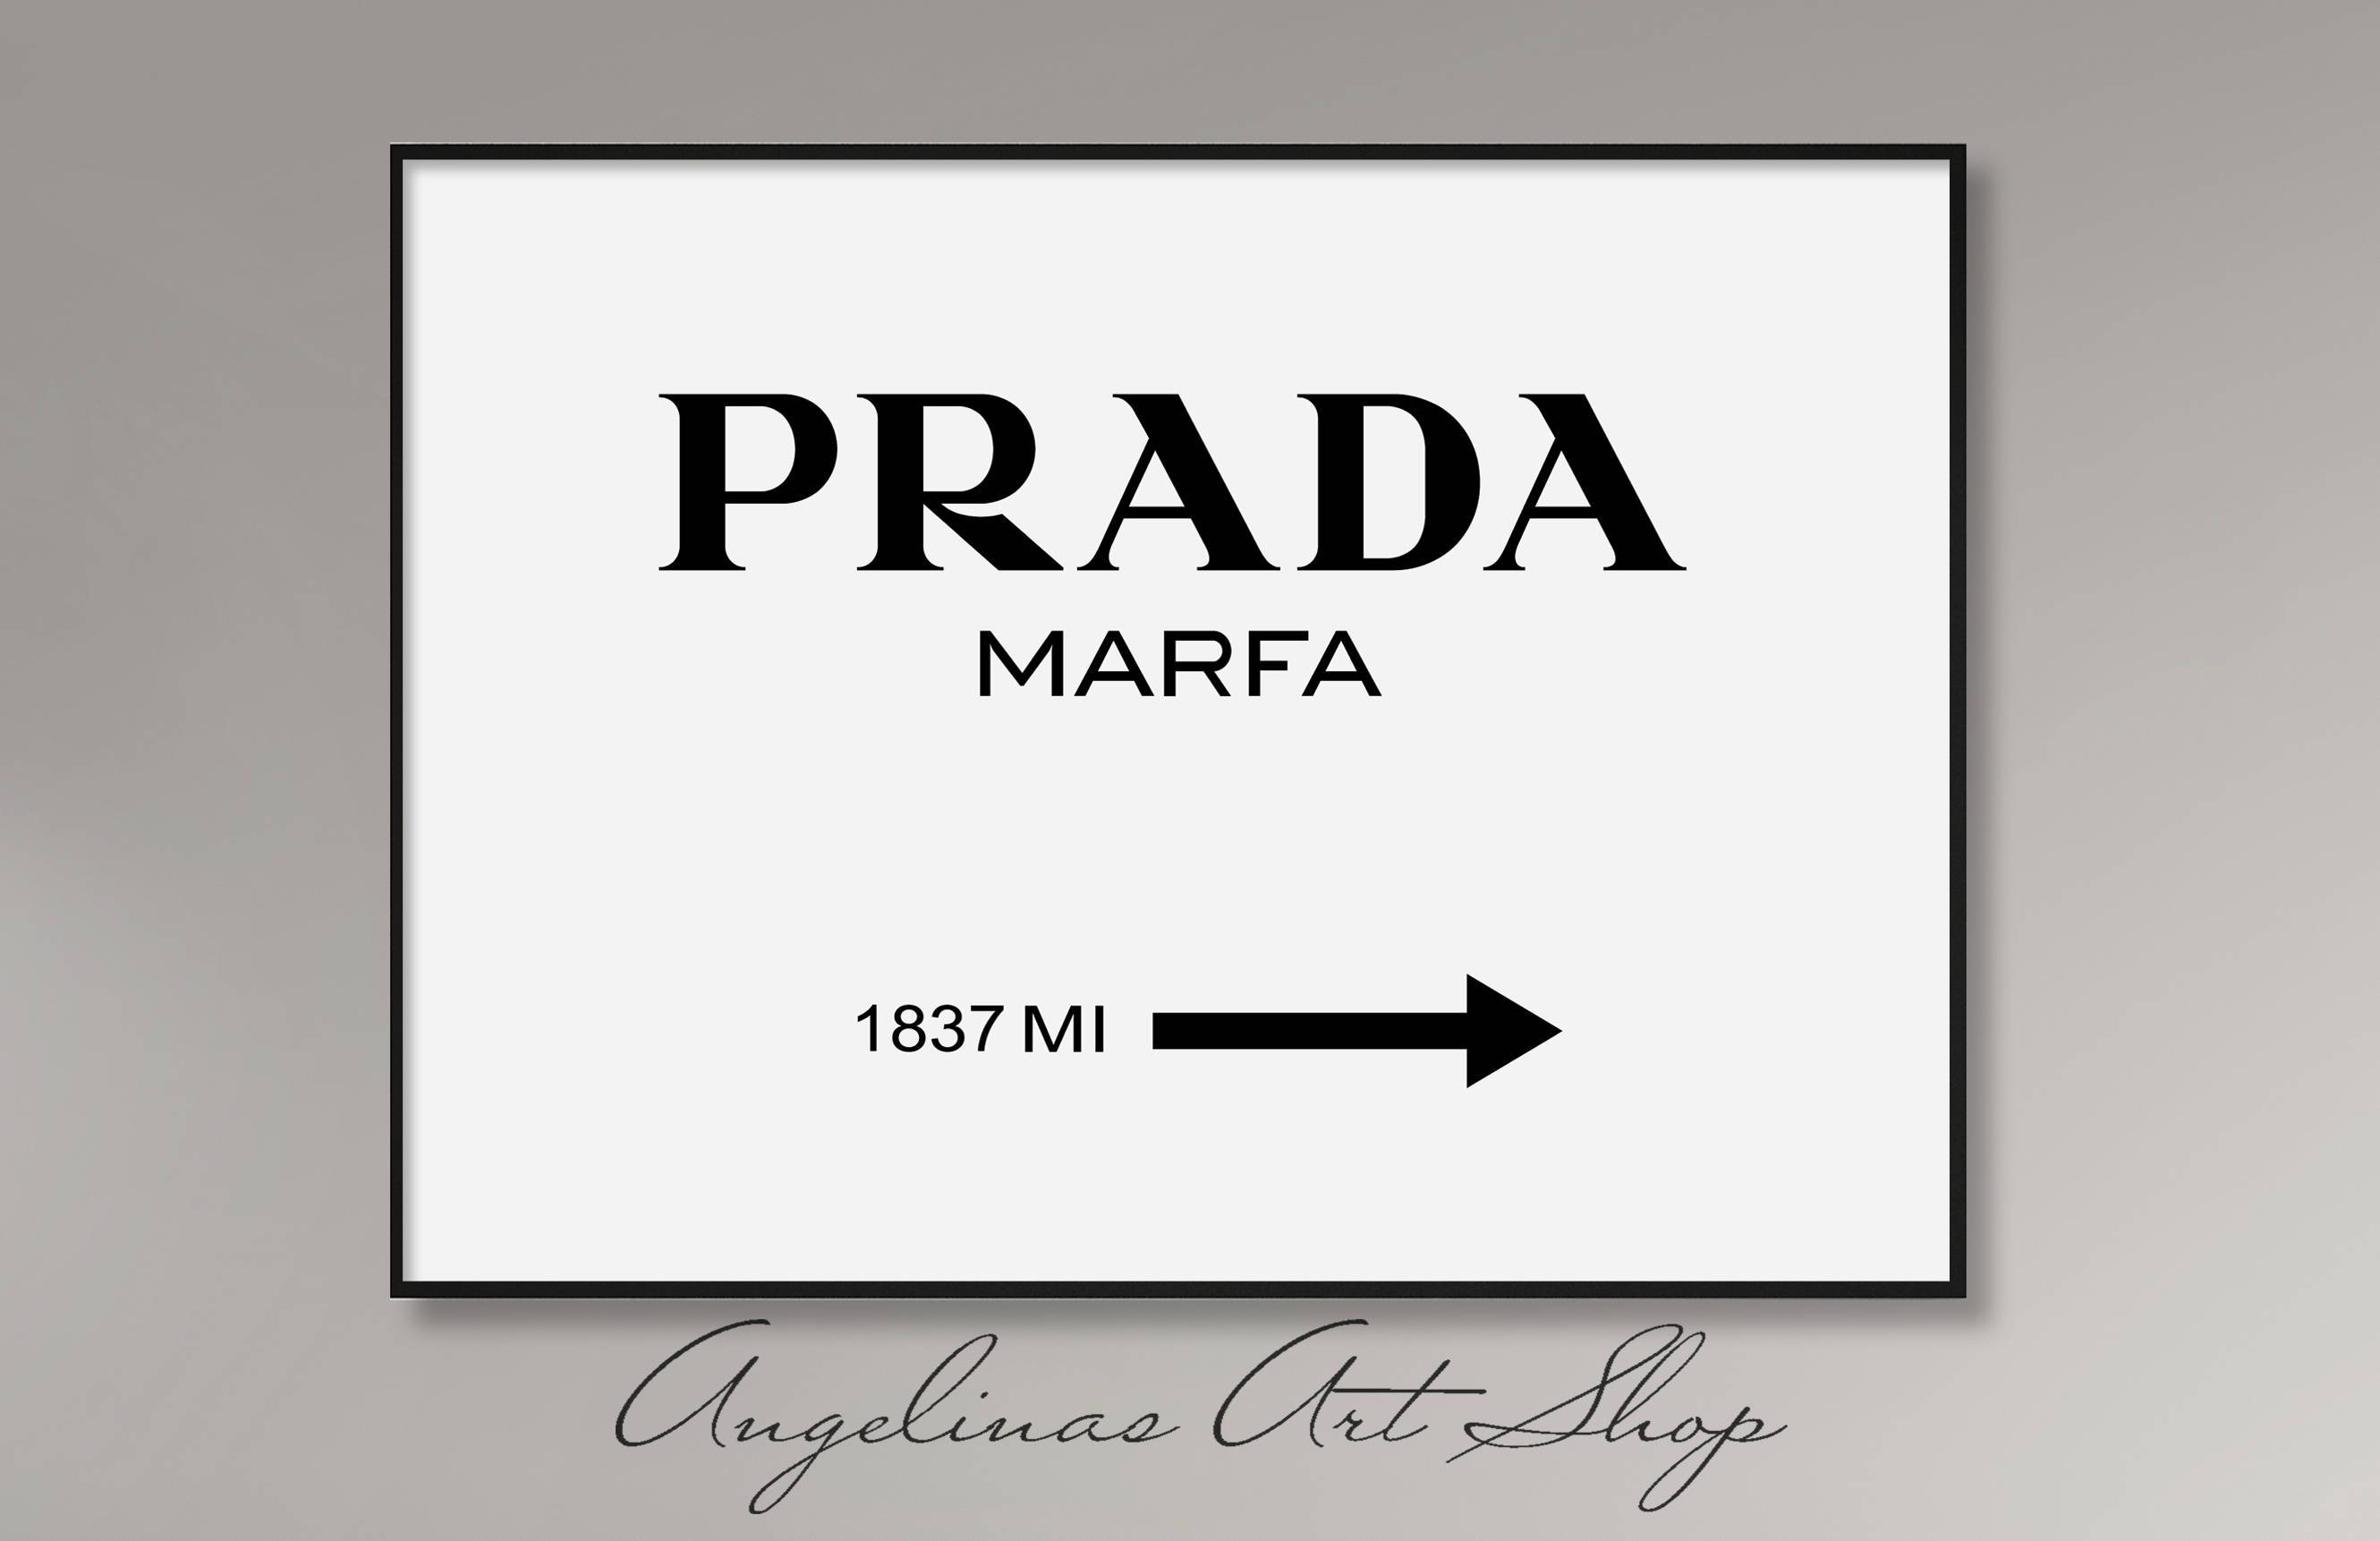 Prada Marfa Wall Art Fashion Print Fashion Logo Fashion Within Current Prada Marfa Wall Art (View 18 of 25)